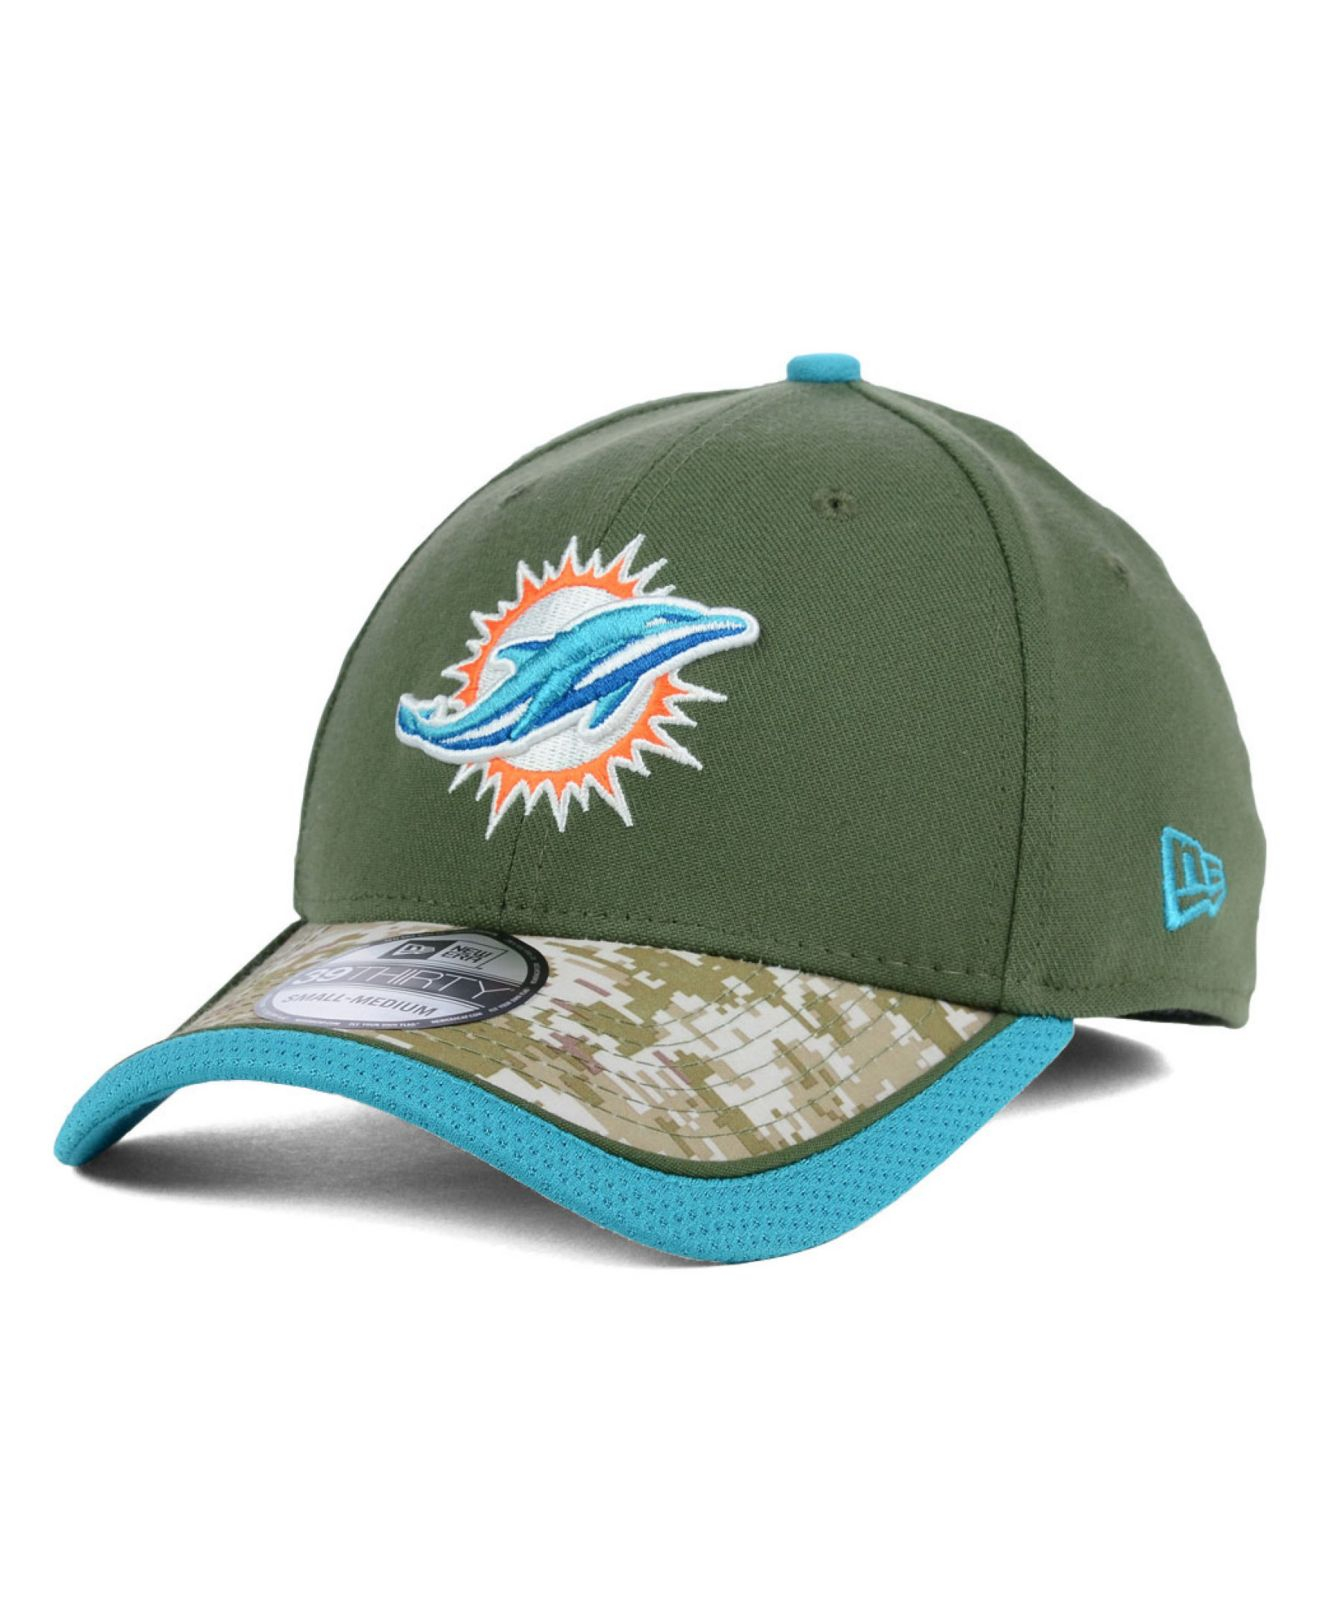 ... coupon code for lyst ktz miami dolphins salute to service 39thirty cap  in green 46ae8 b83d0 d9e3a53b8